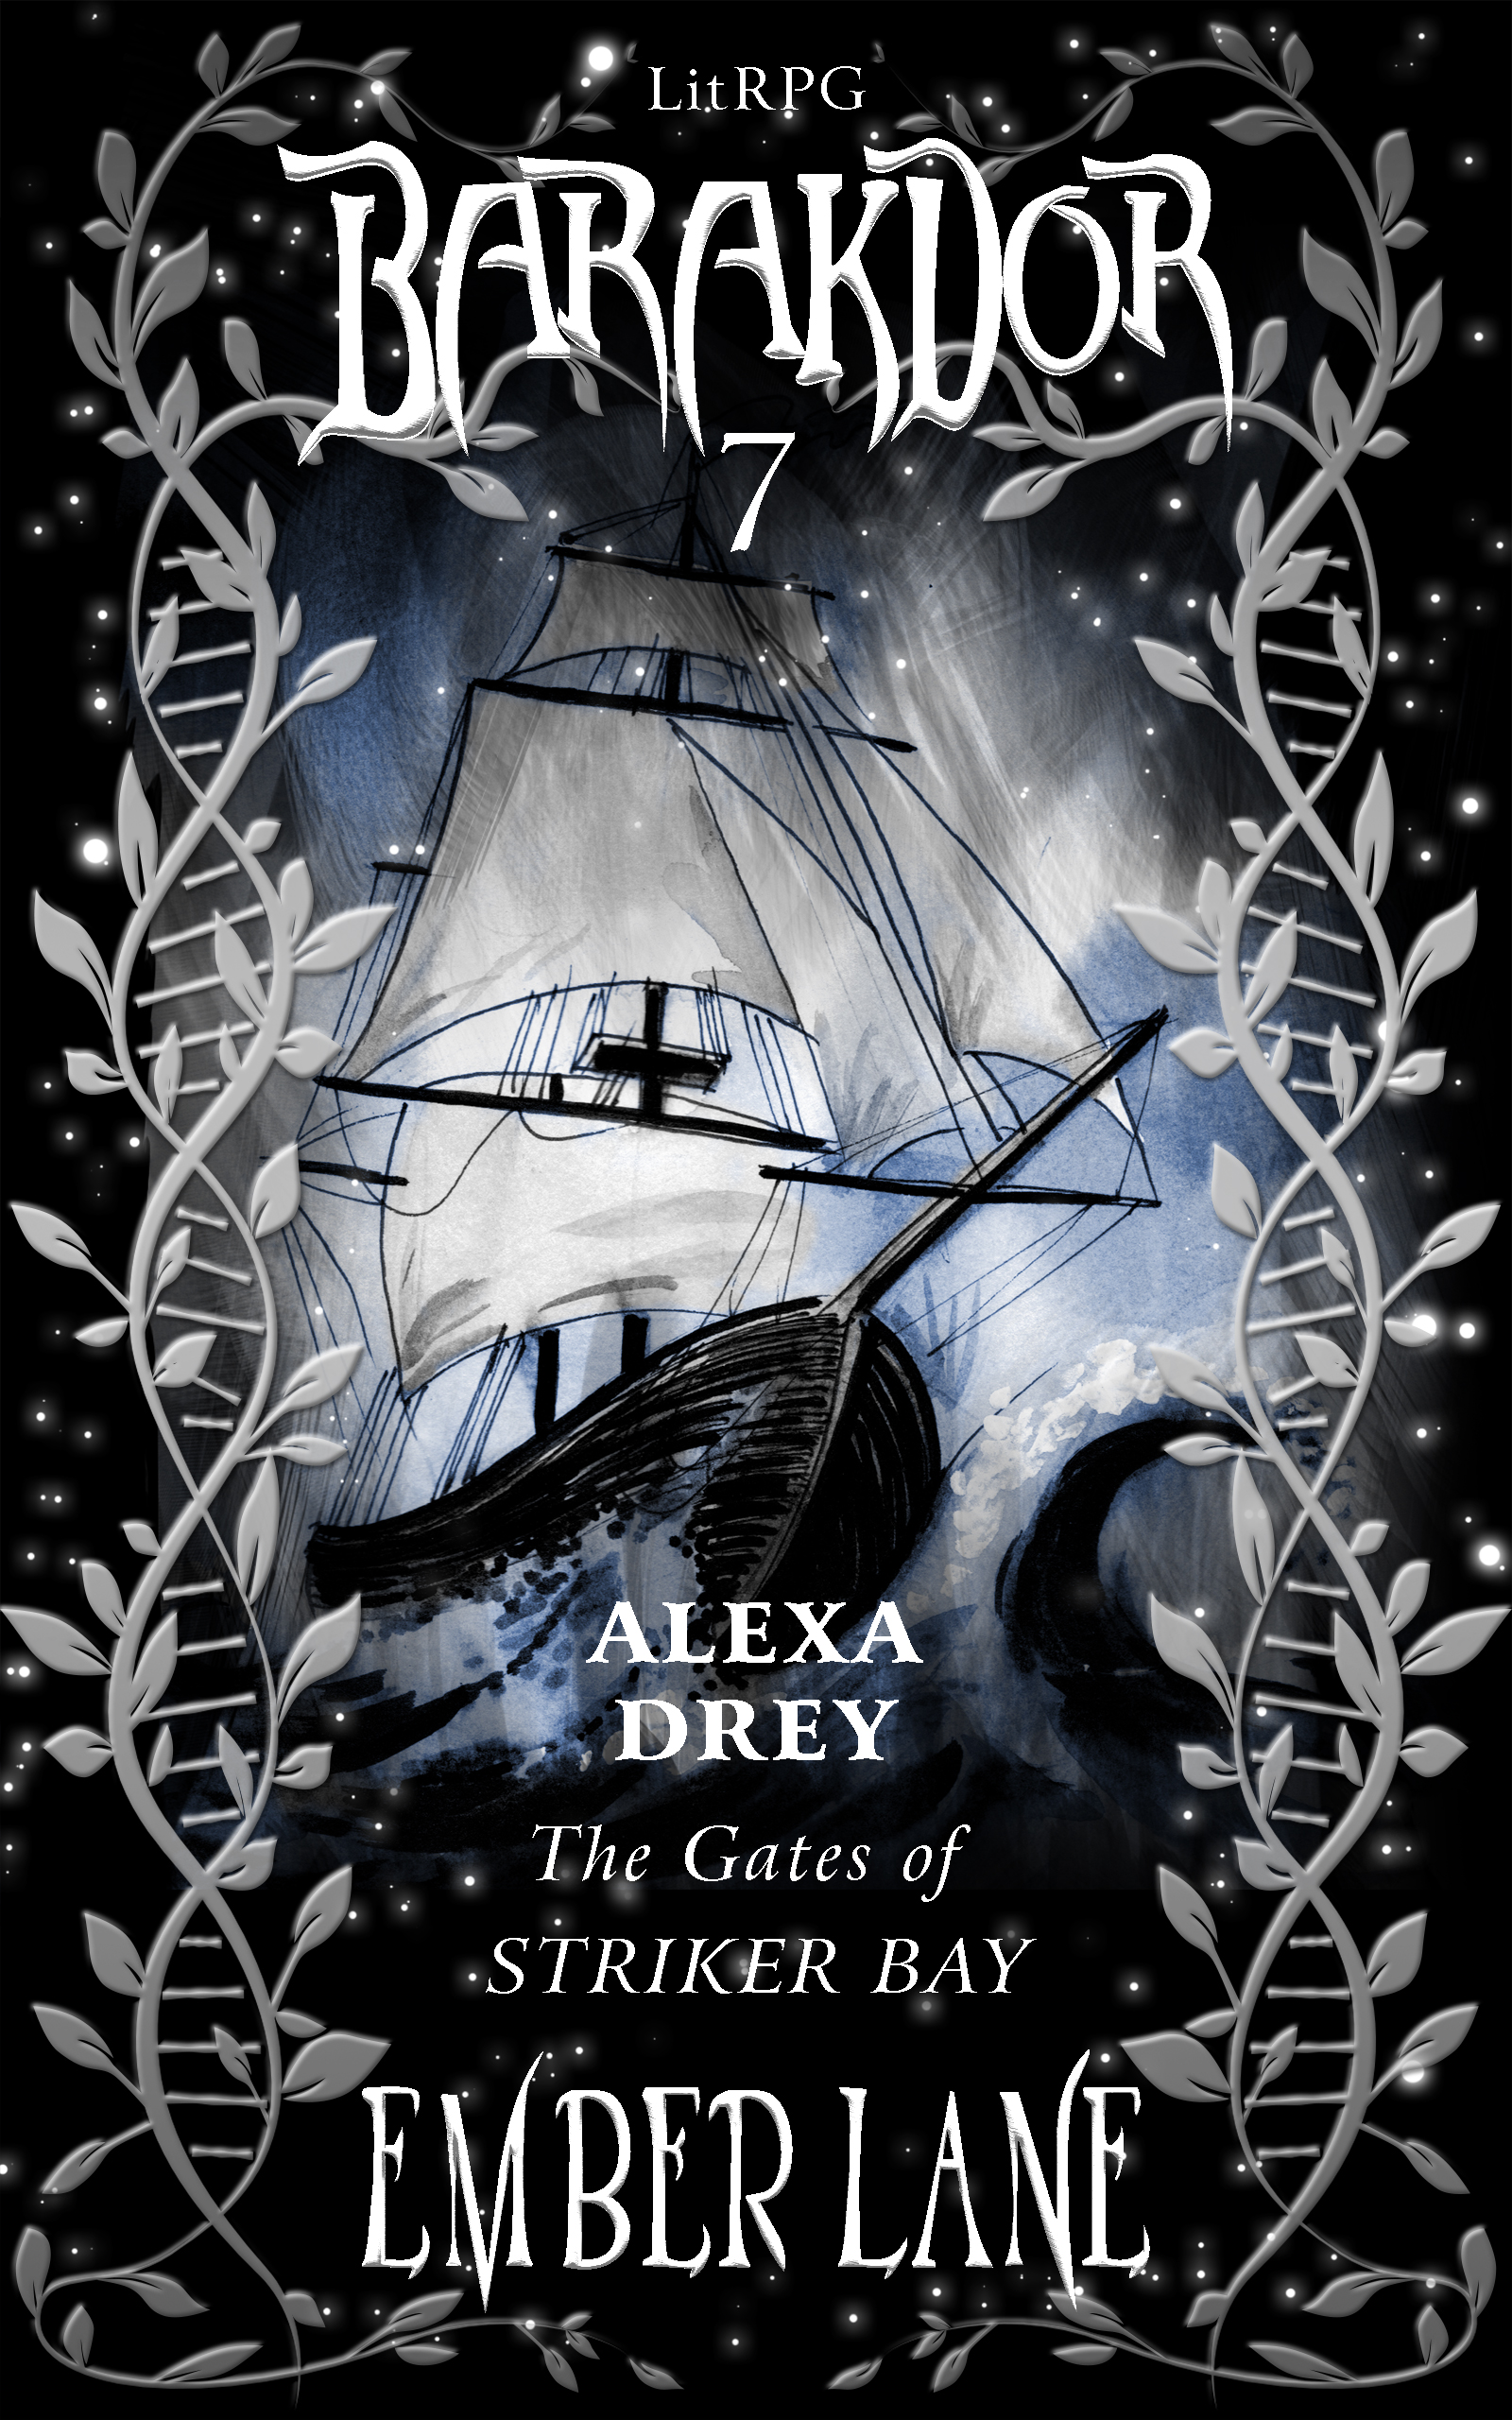 ALEXA DREY – The Gates of Striker Bay (Barakdor book 7)